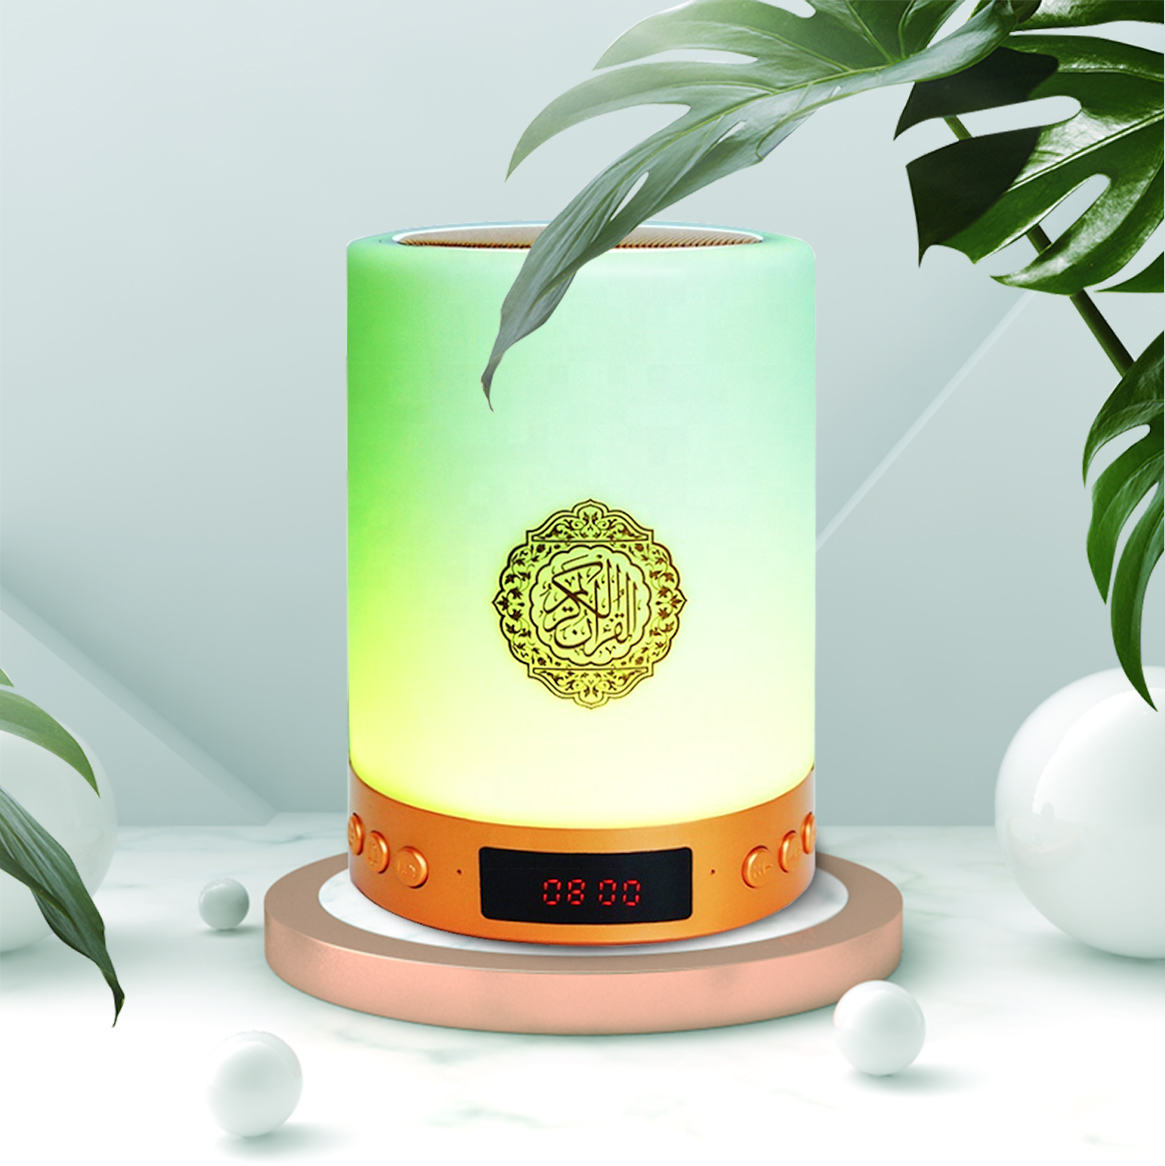 Islamitische <span class=keywords><strong>Mini</strong></span> Draagbare Gift Digit Bluetooth Afstandsbediening <span class=keywords><strong>8Gb</strong></span> <span class=keywords><strong>MP3</strong></span> Gratis Downloaden Touch Lamp Heilige Koran Speaker